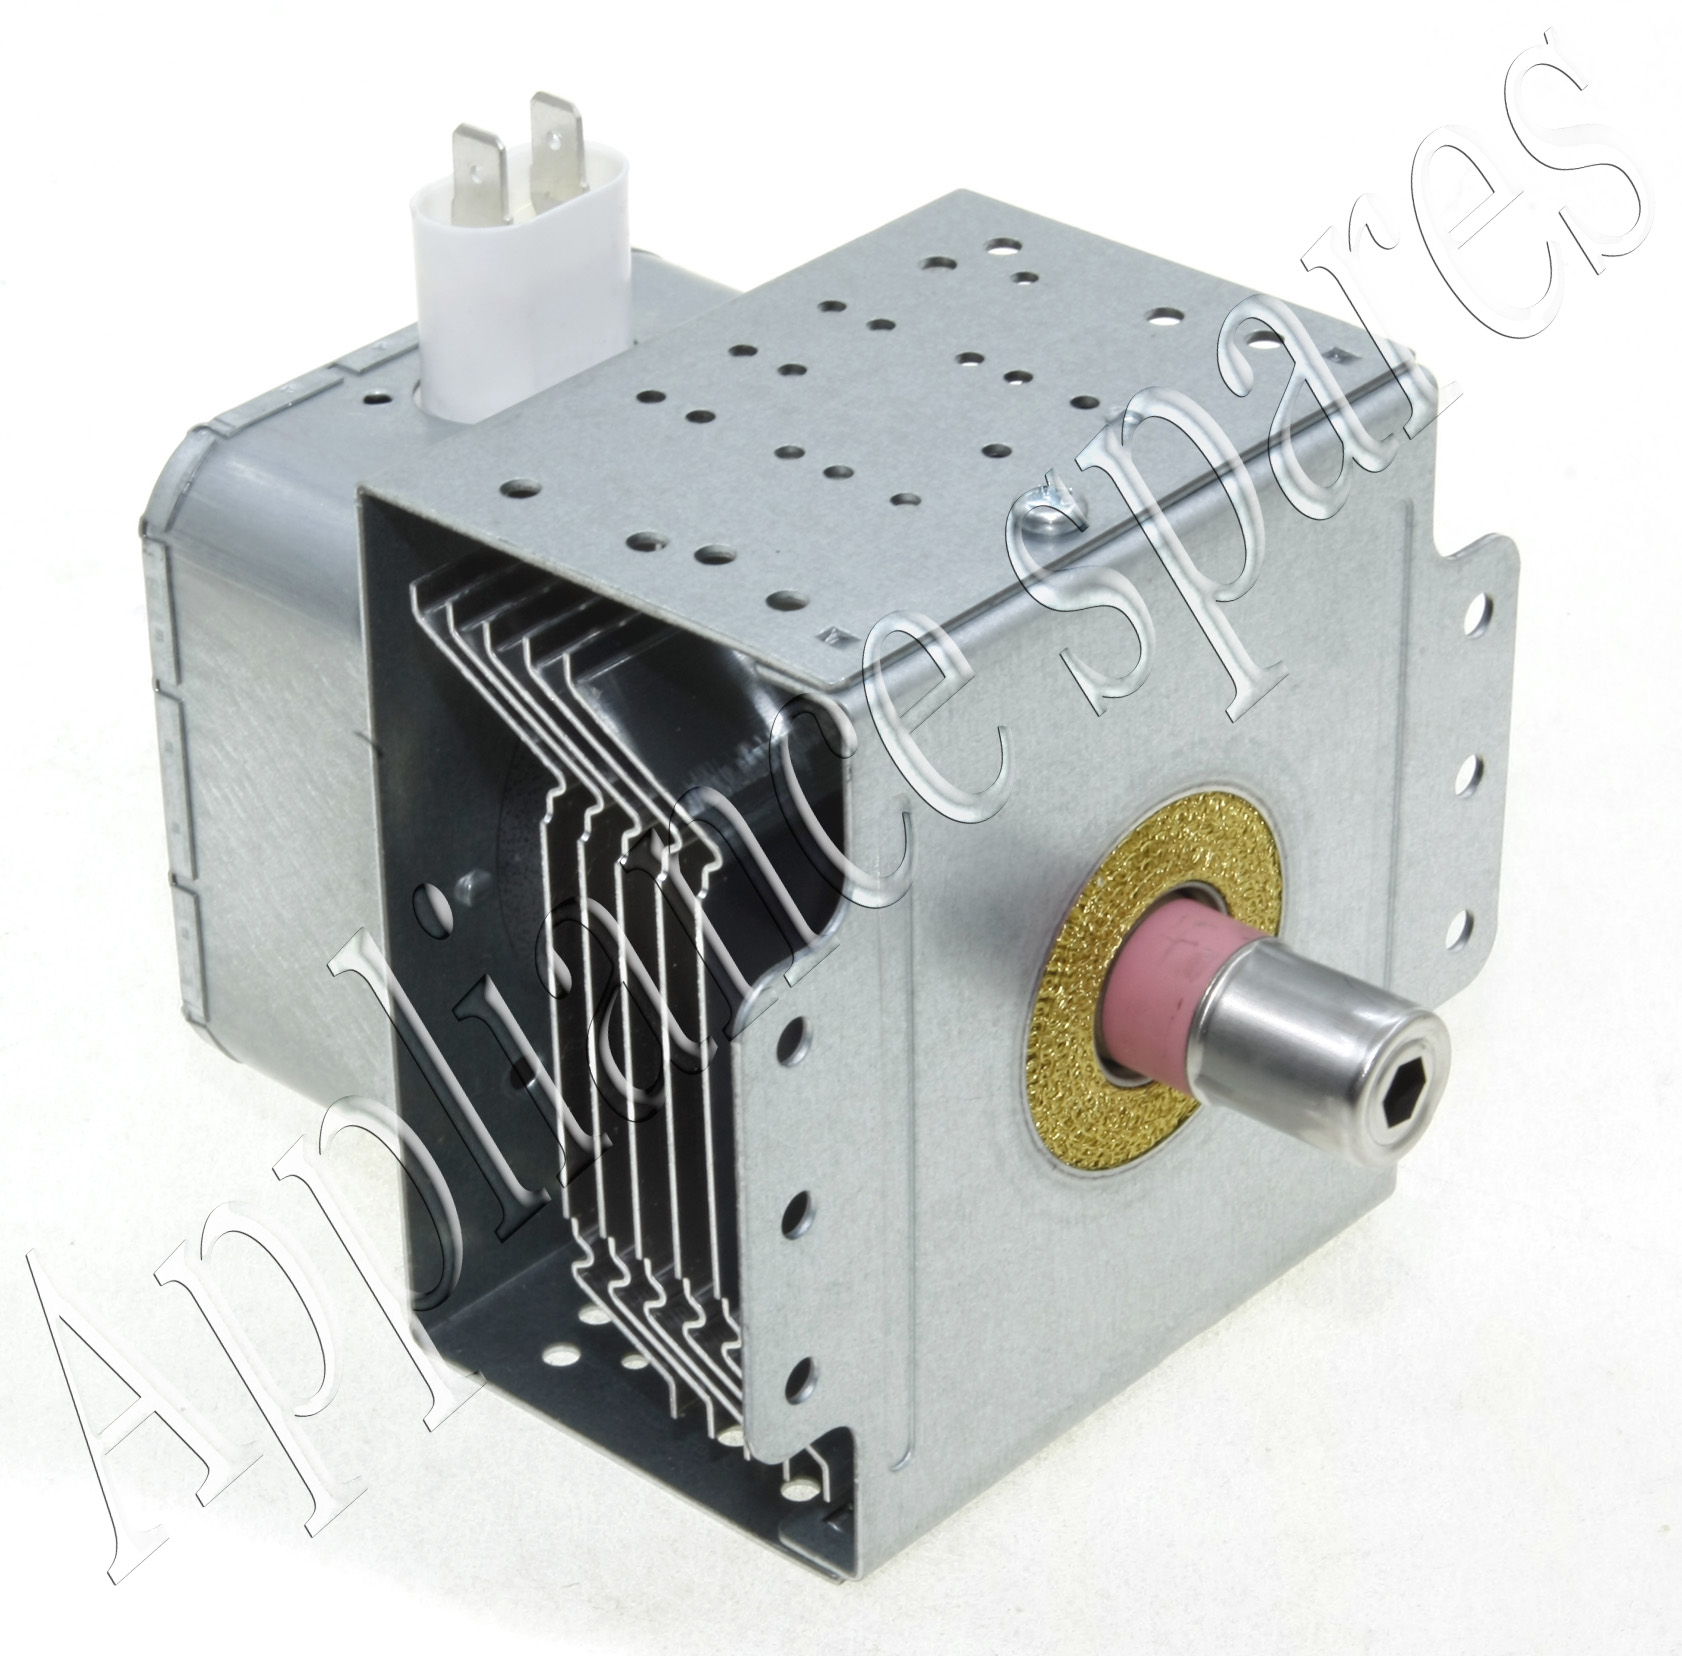 Kelvinator Microwave Oven Magnetron Lategan And Van Biljoens Liance Spares Parts Accessories